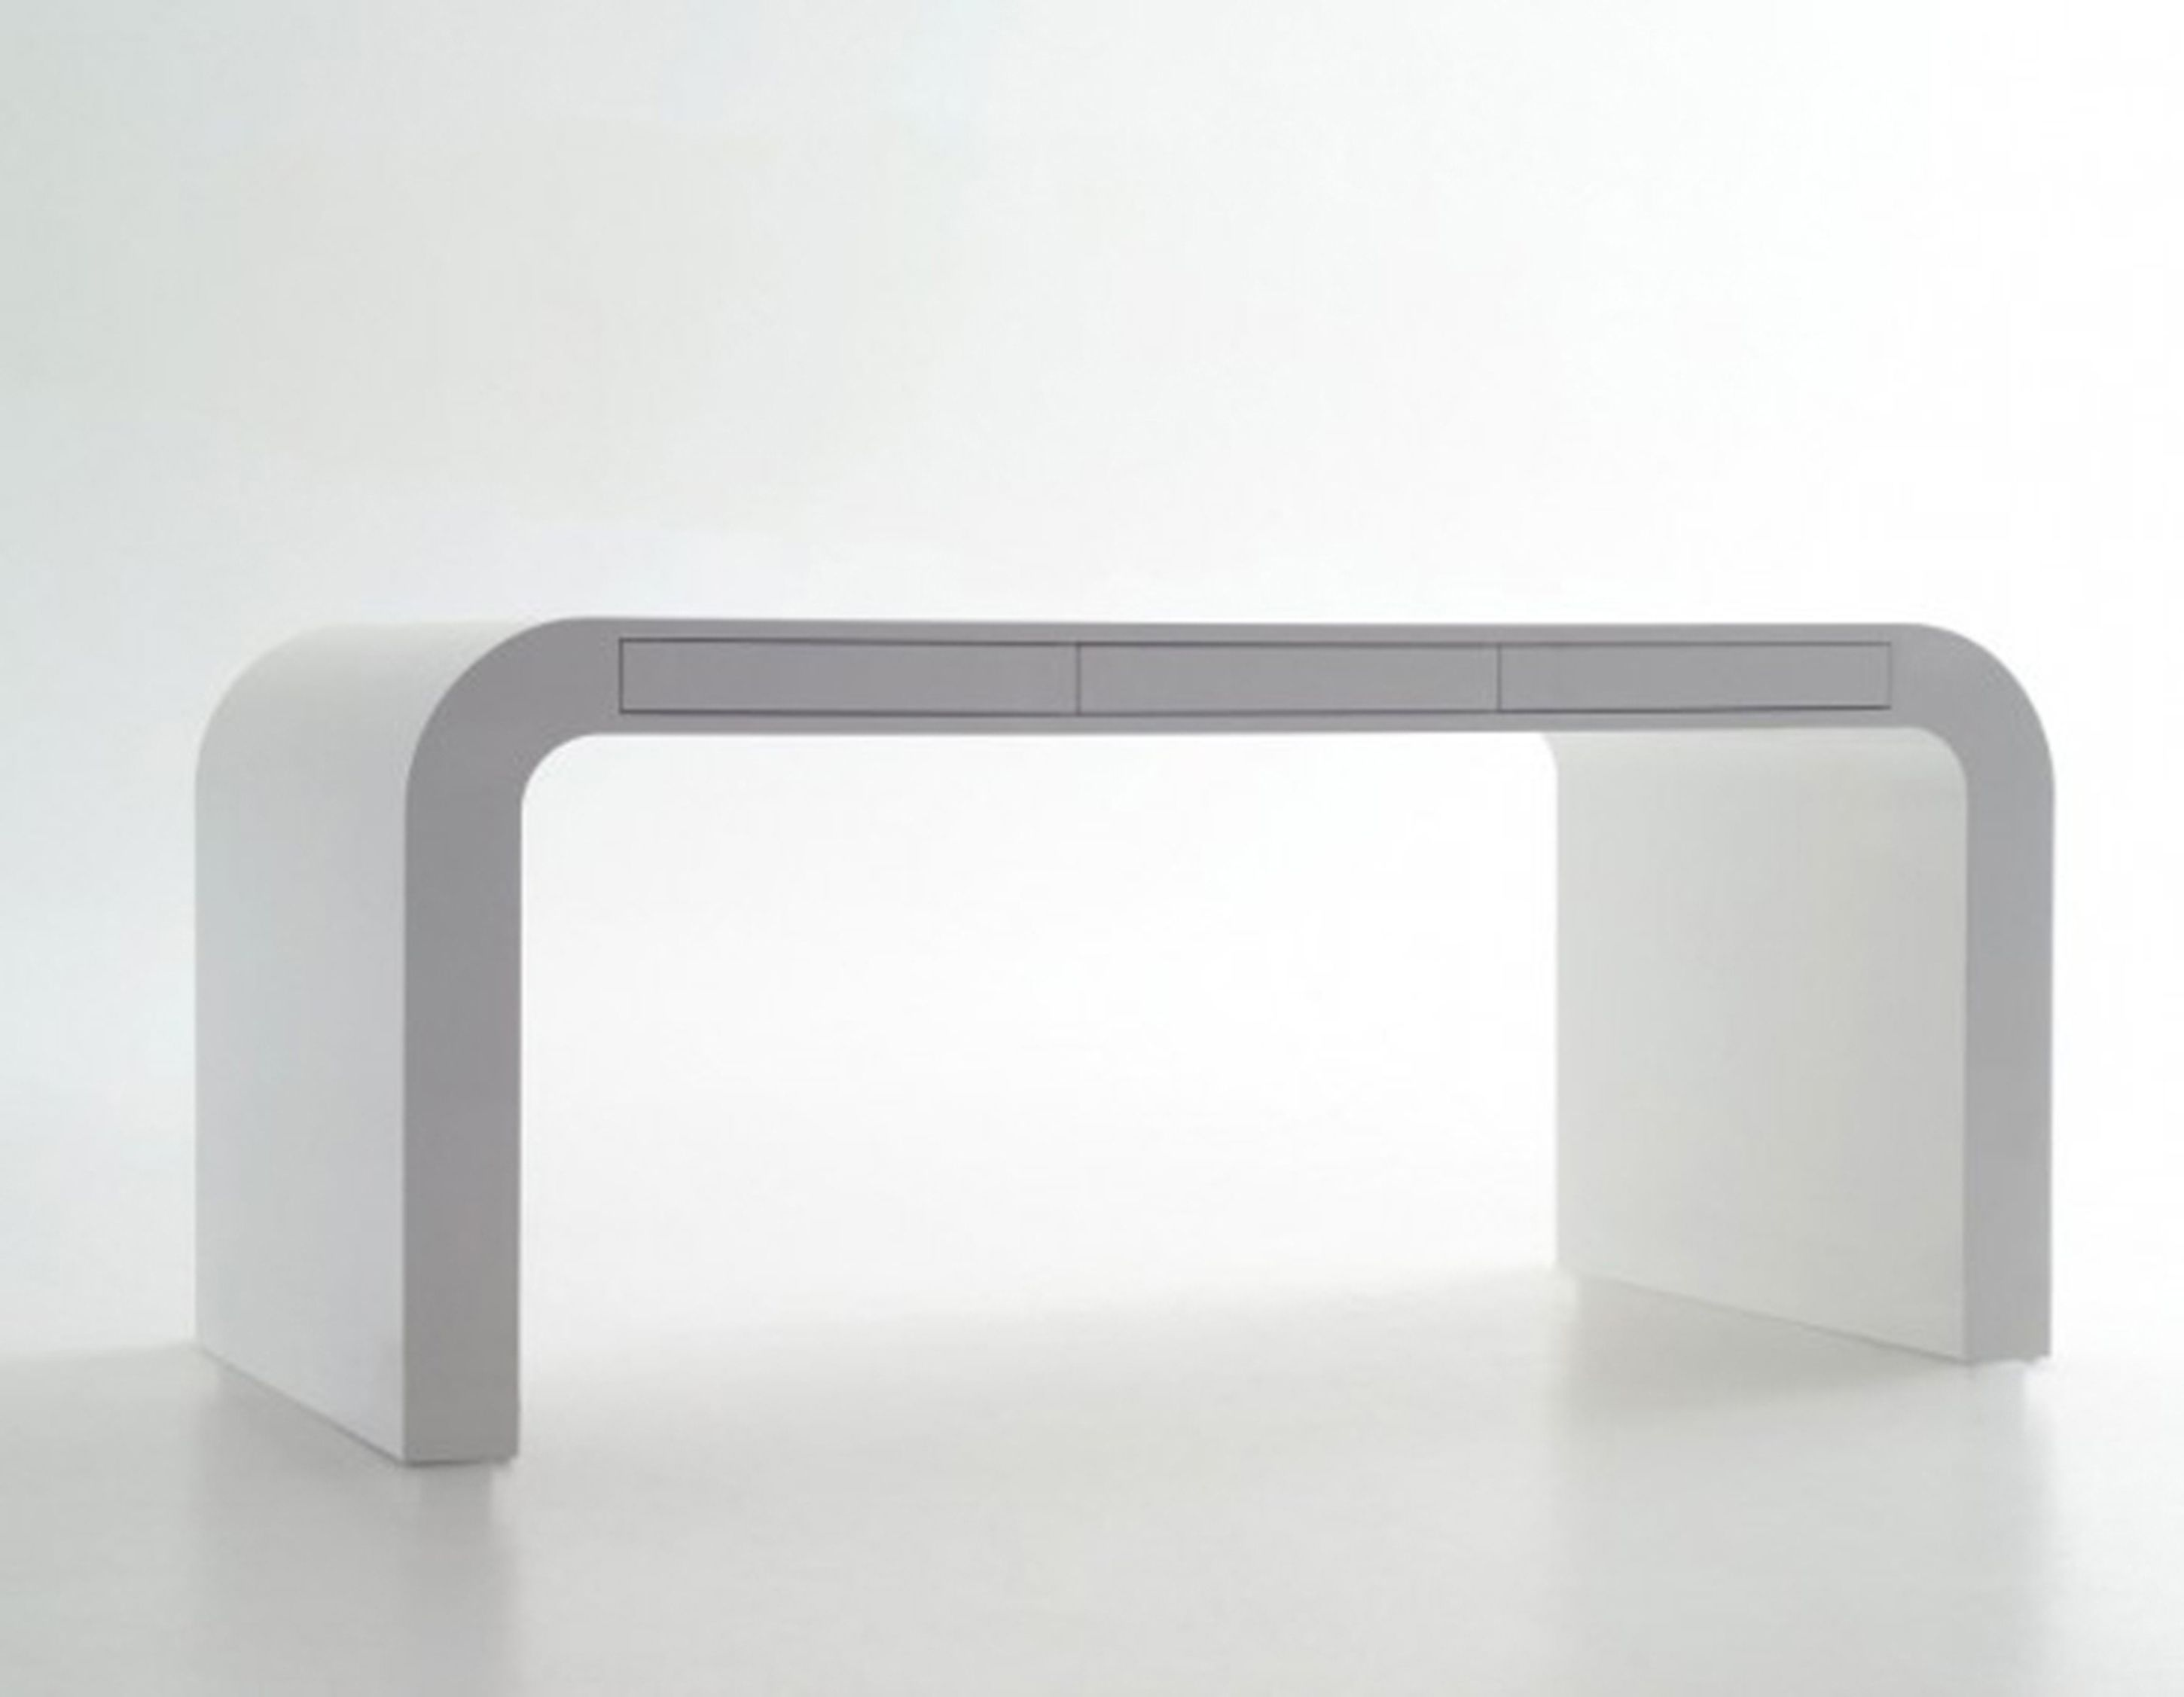 Design White Office Desk graceful modern home office desk design ea in white with drawers the stylish safarihomedecor is one of pictures that are related to picture befo